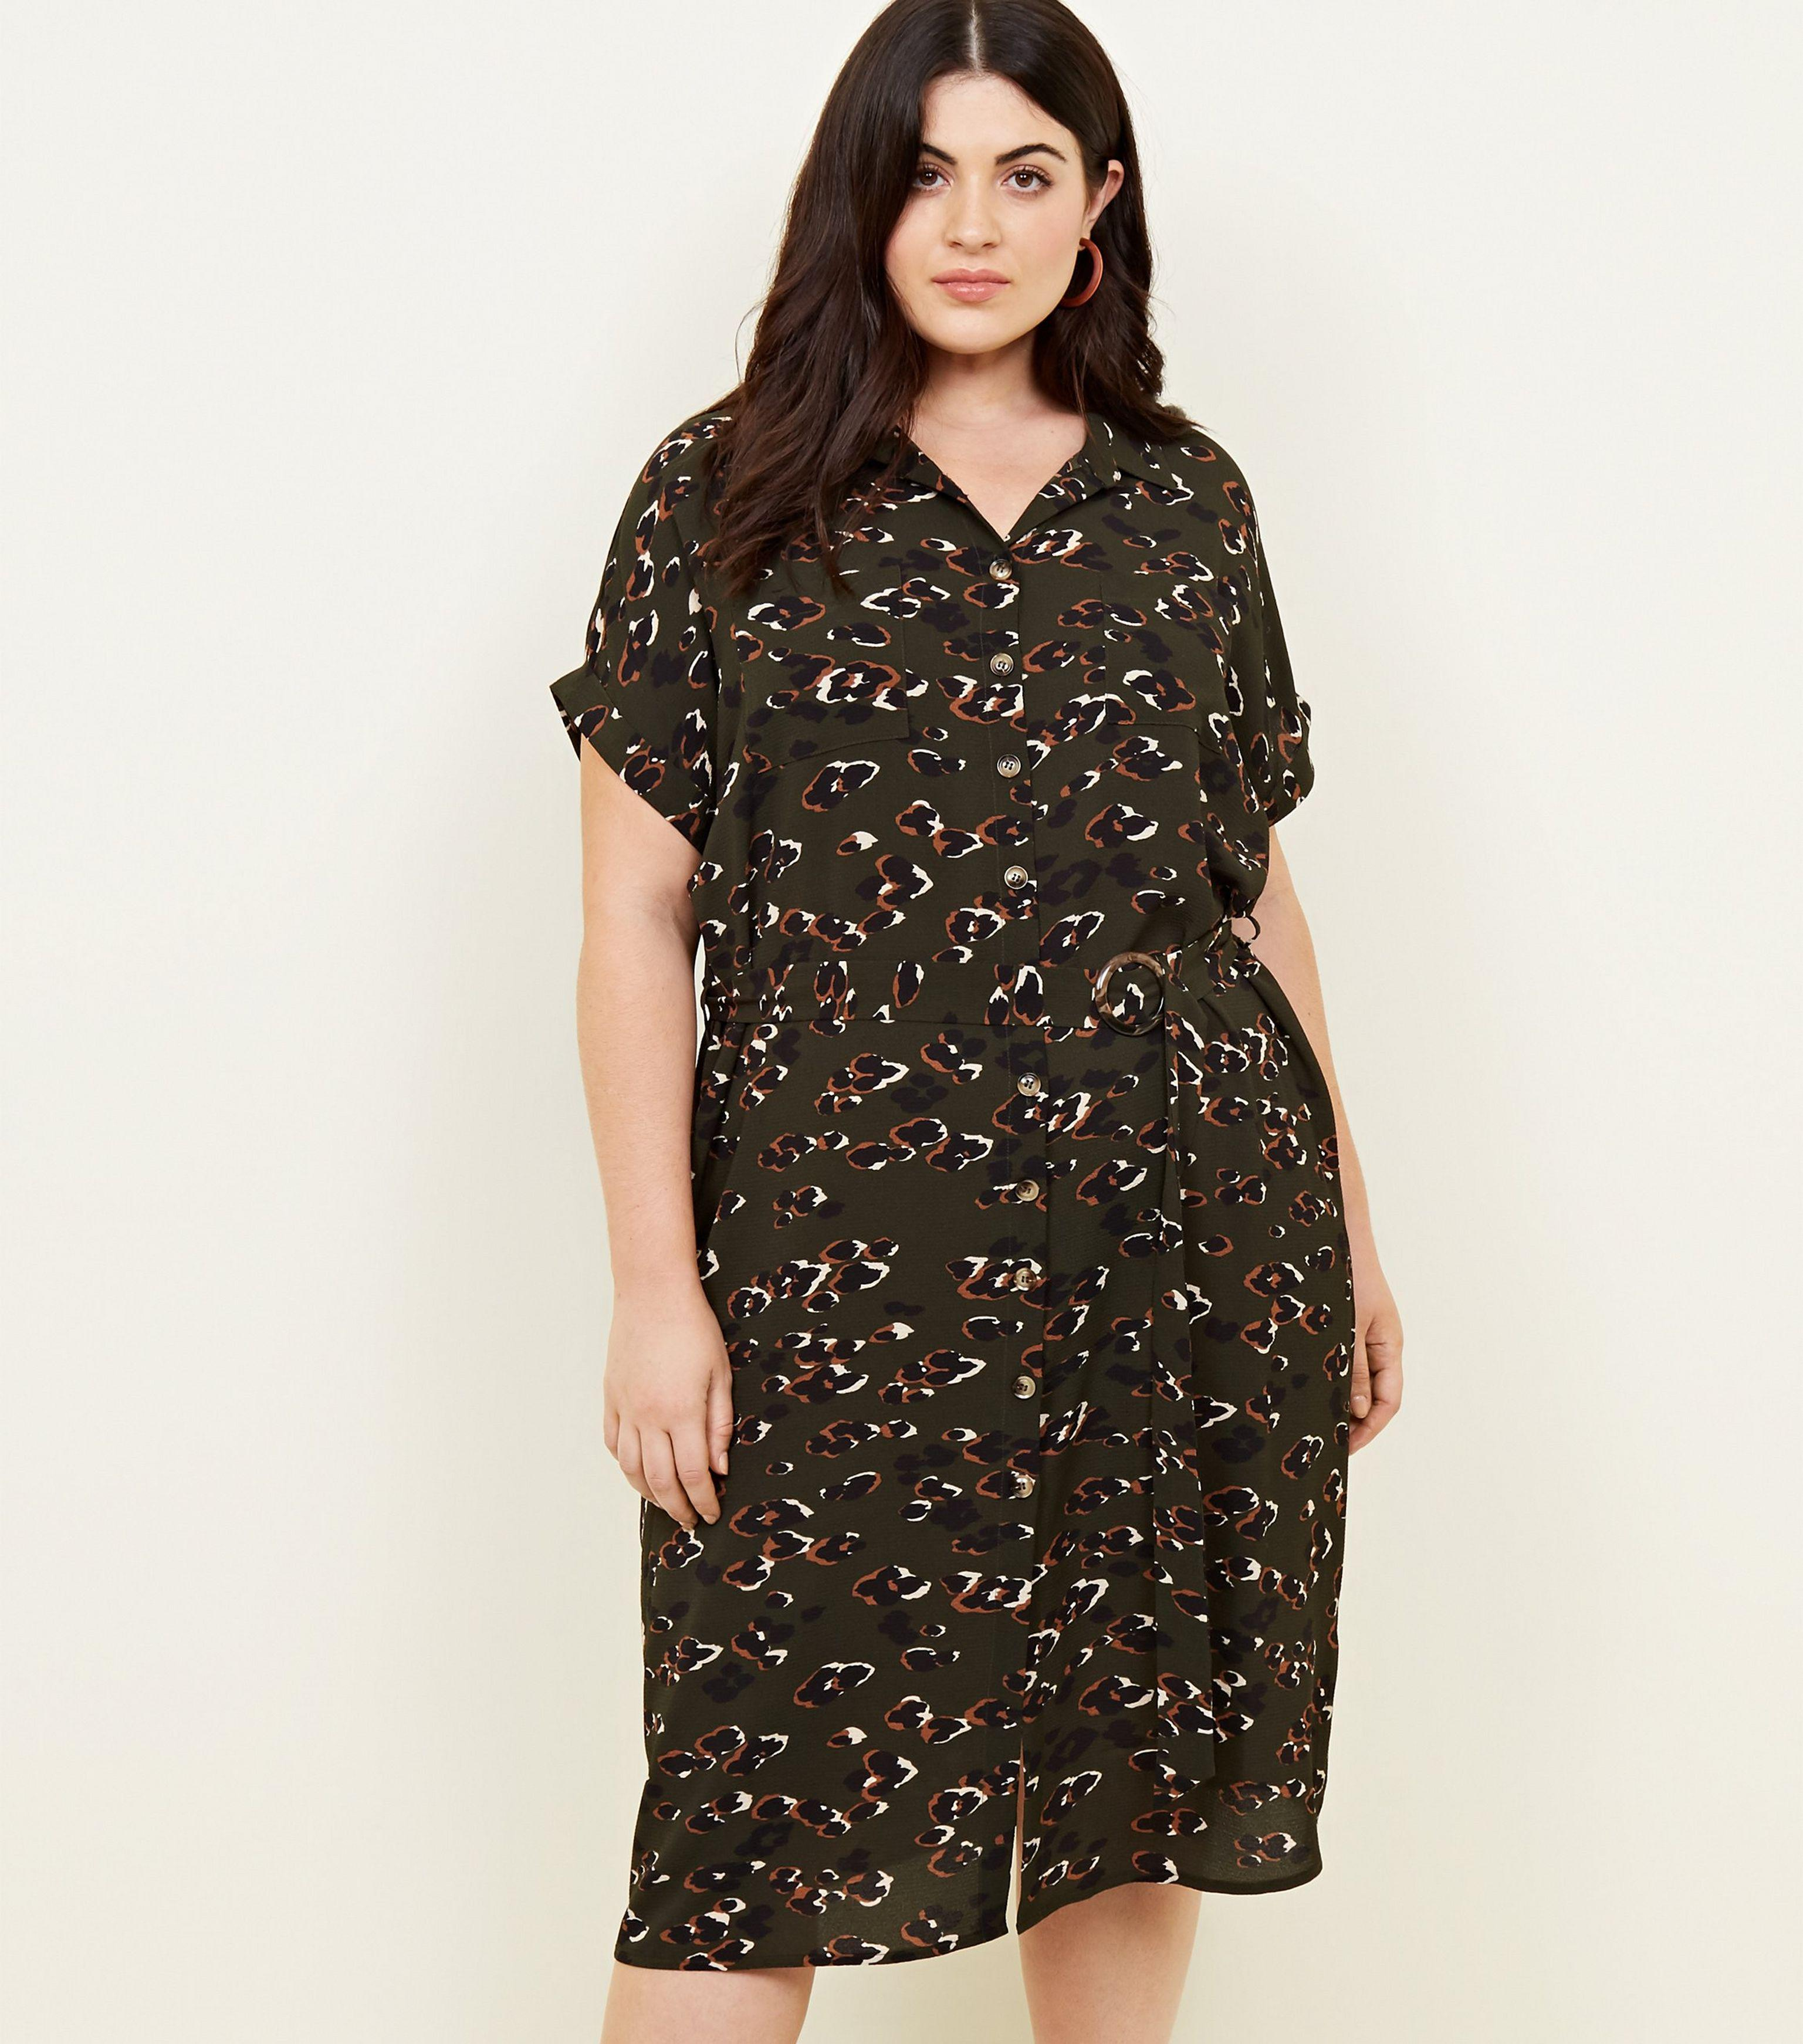 a1d857f71c New Look Curves Dark Green Animal Print Midi Shirt Dress in Green - Lyst